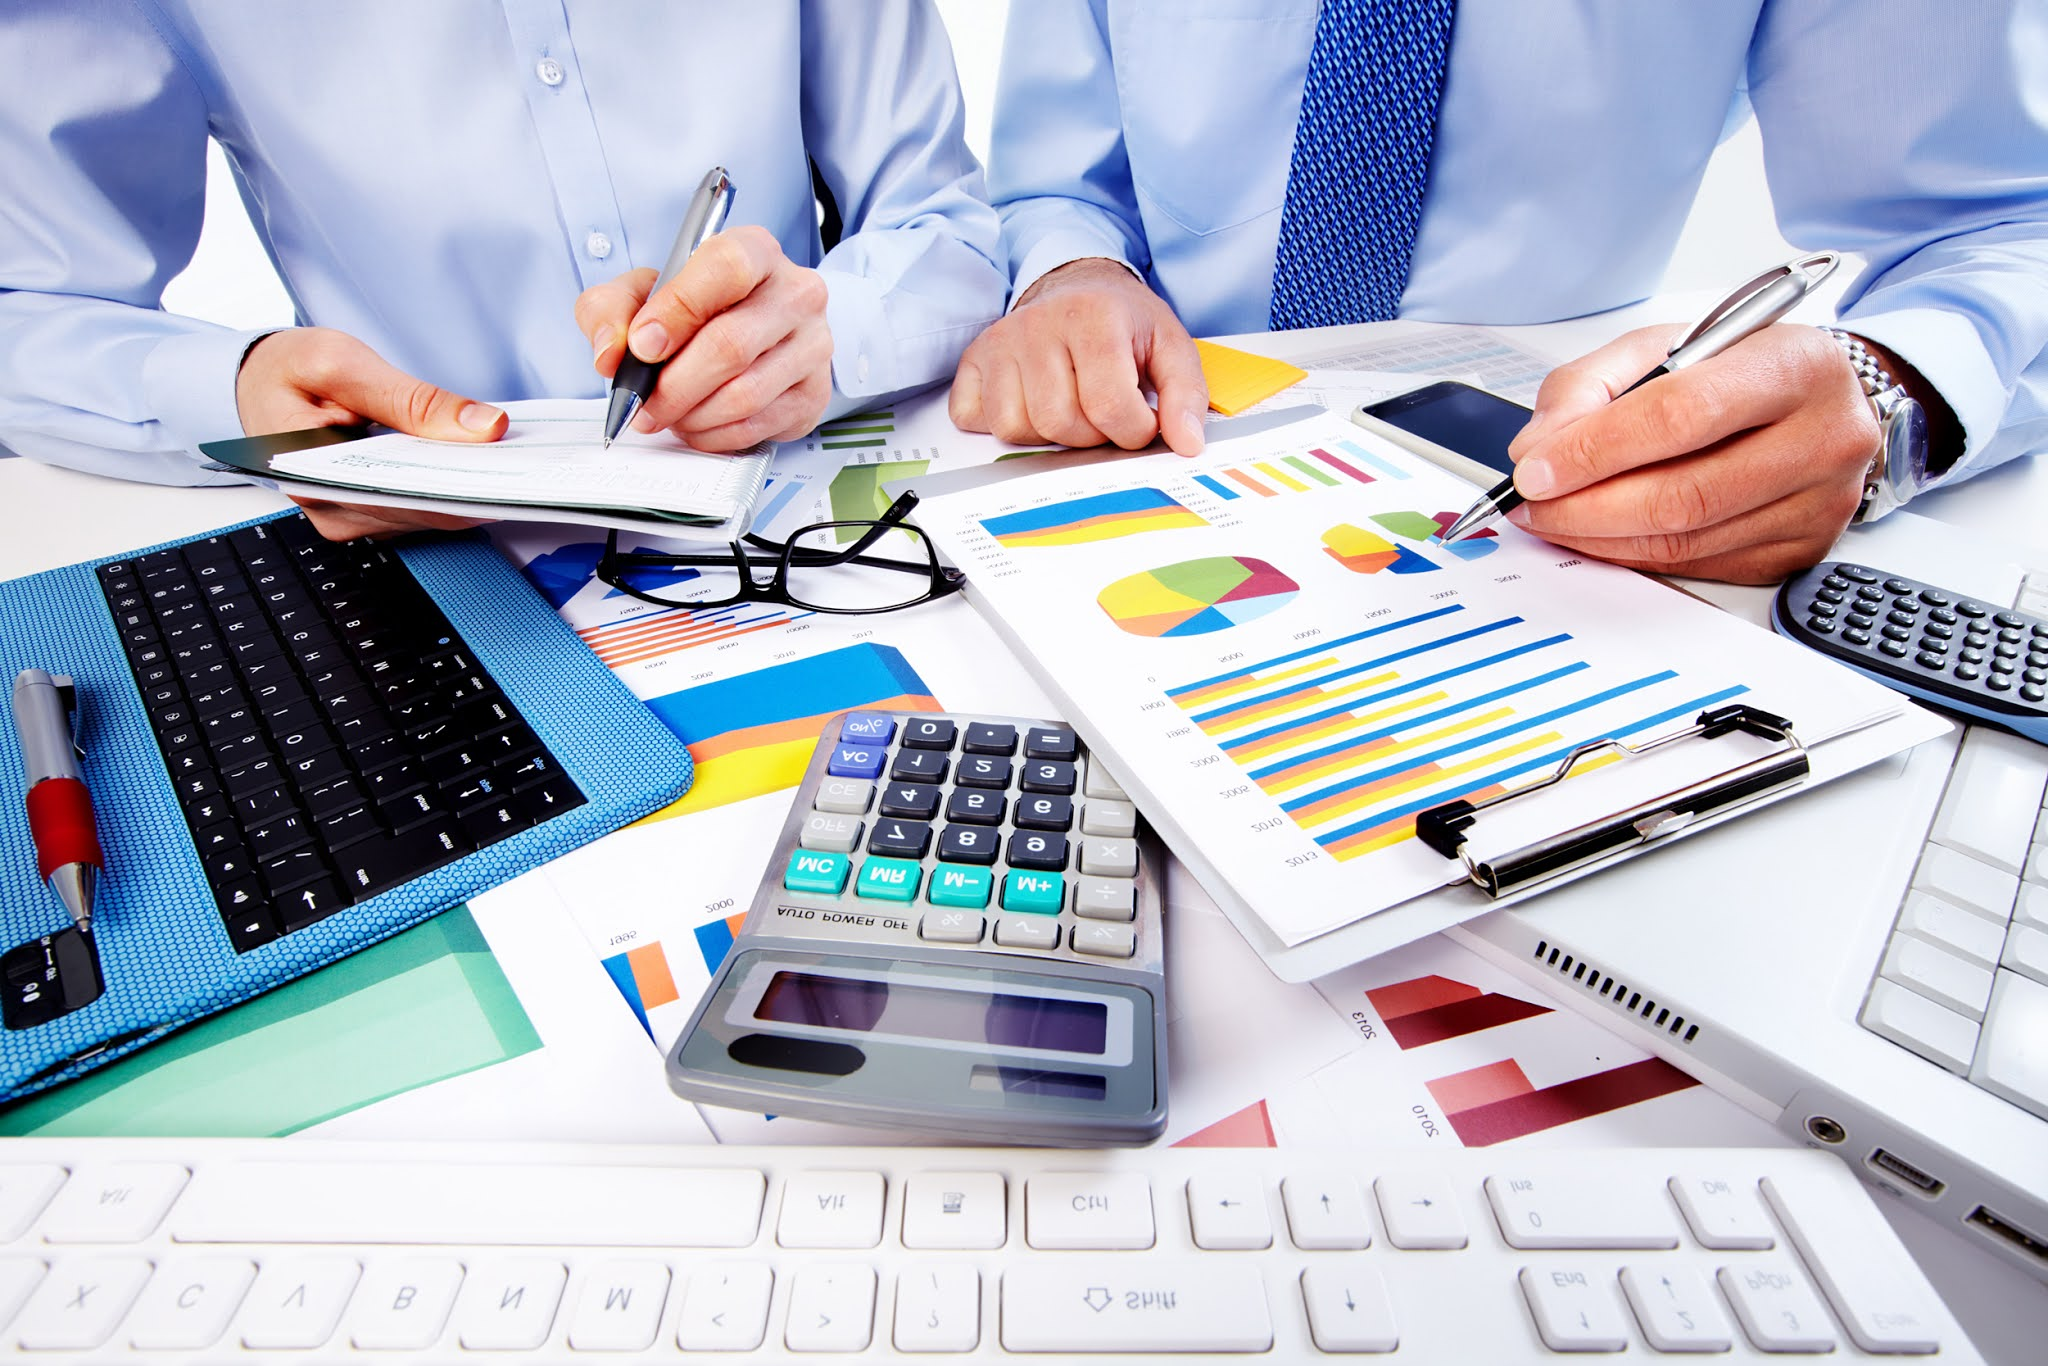 How Can I Get An Intermediate Accounting Course Online?